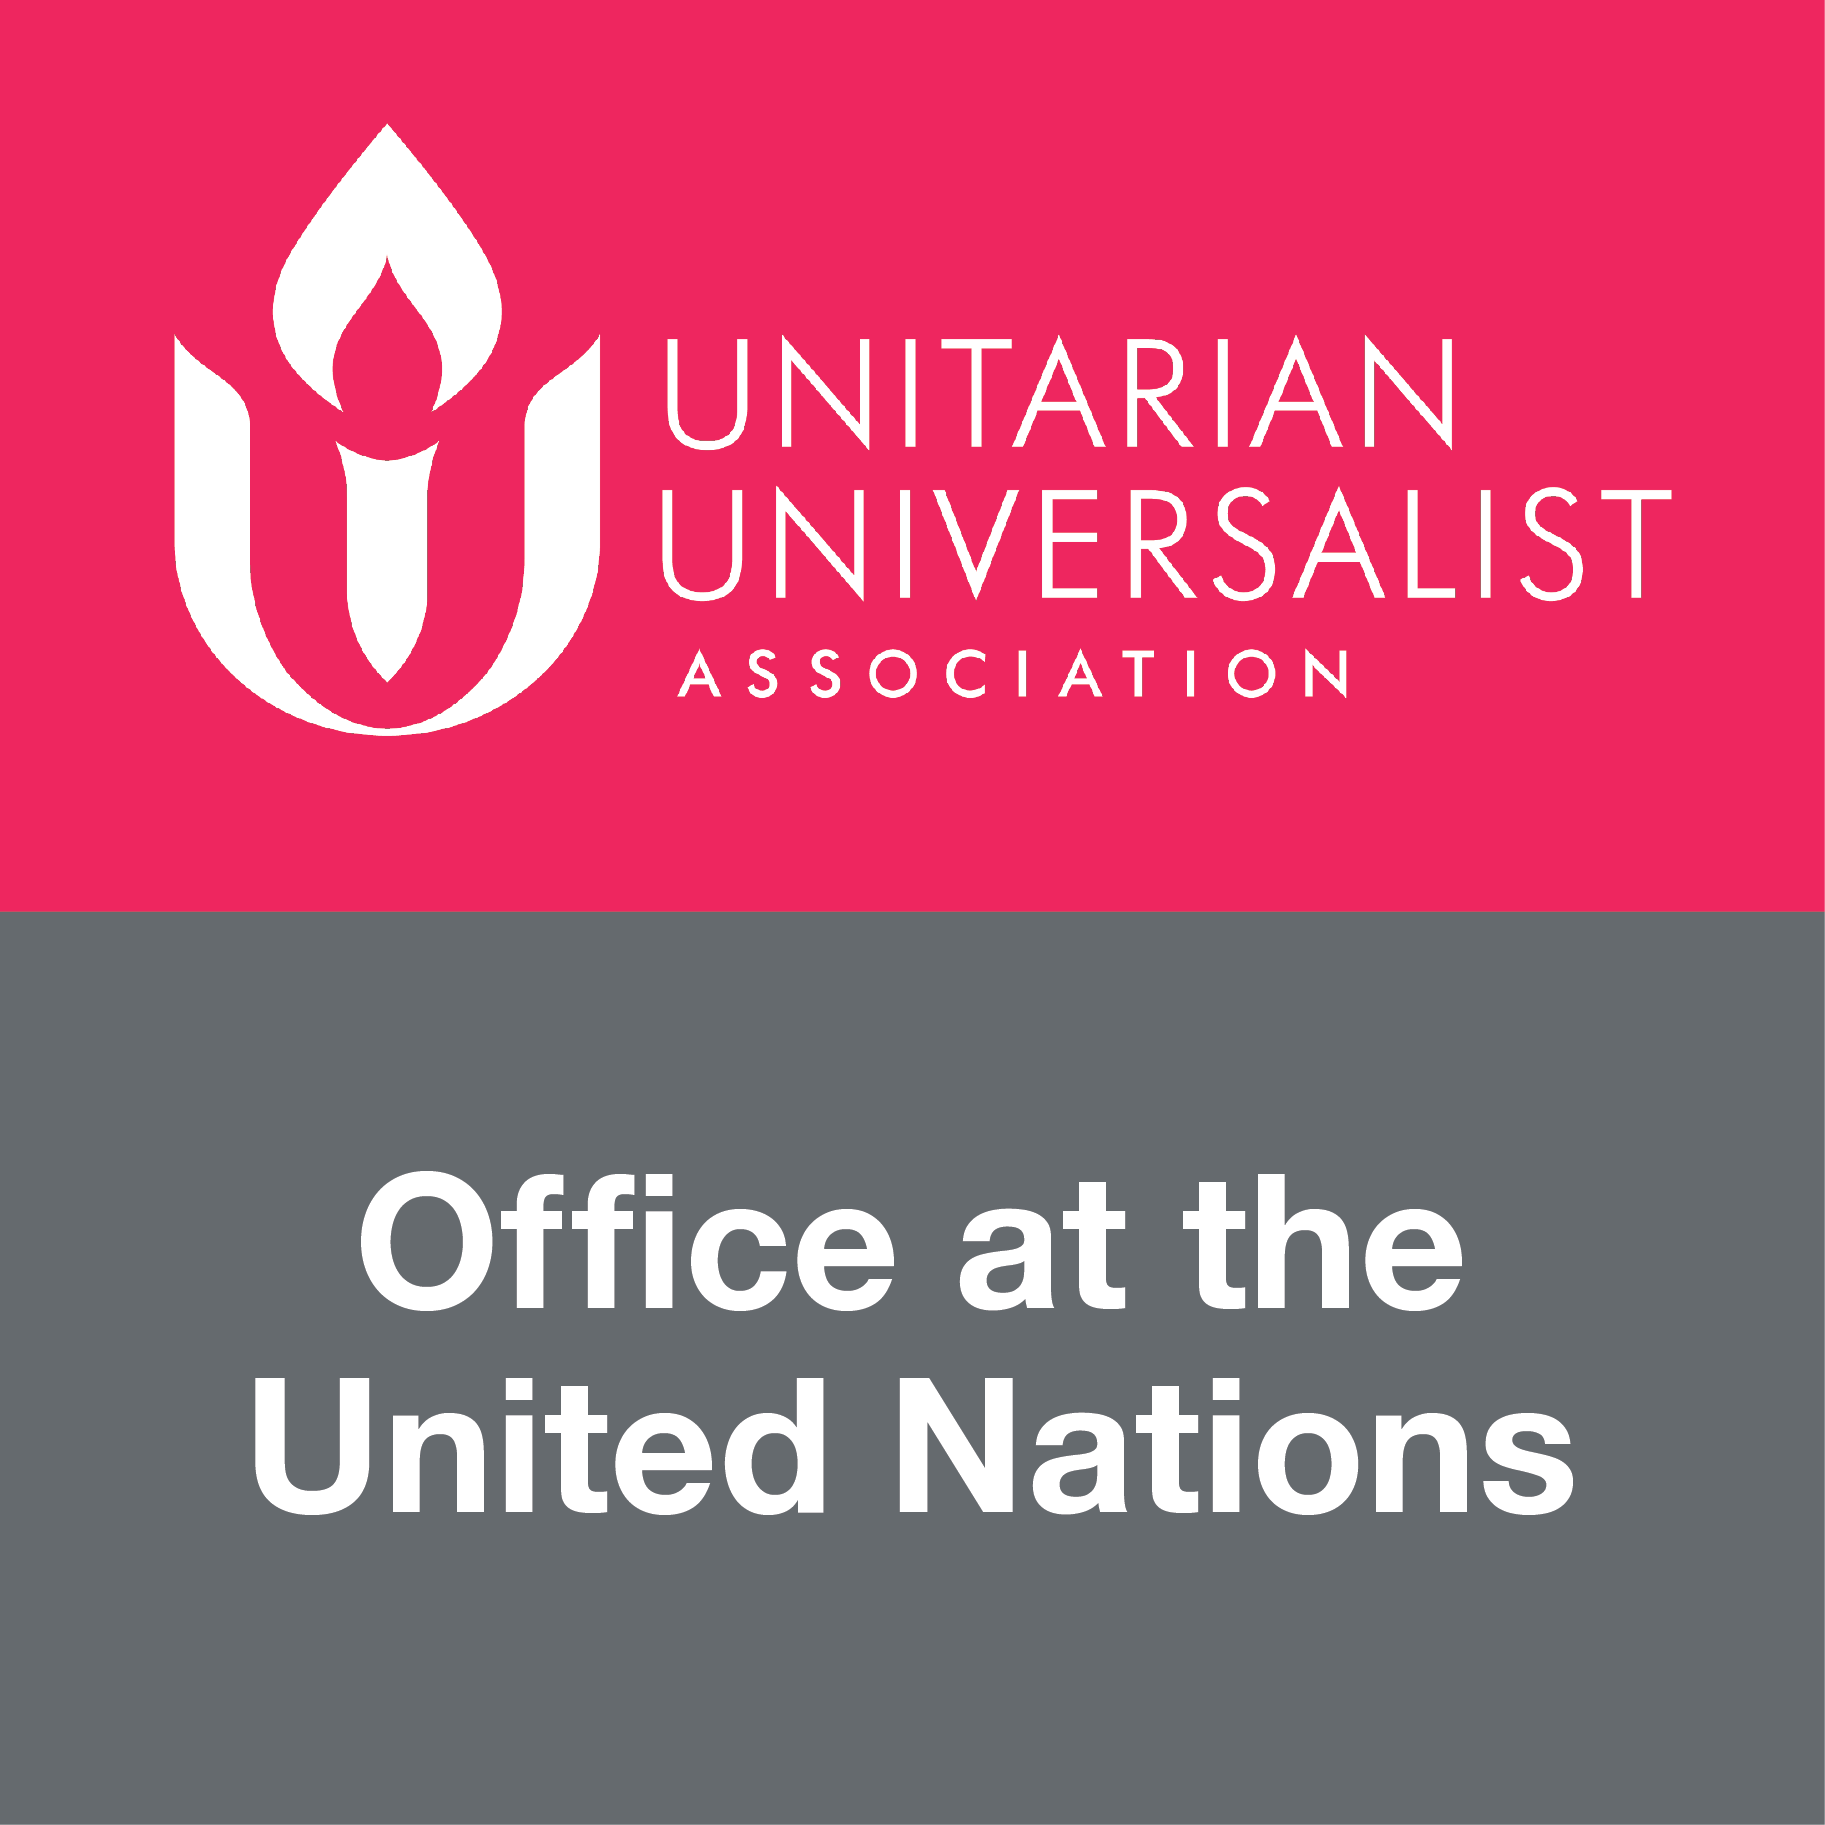 Unitarian Universalist Office at the United Nations